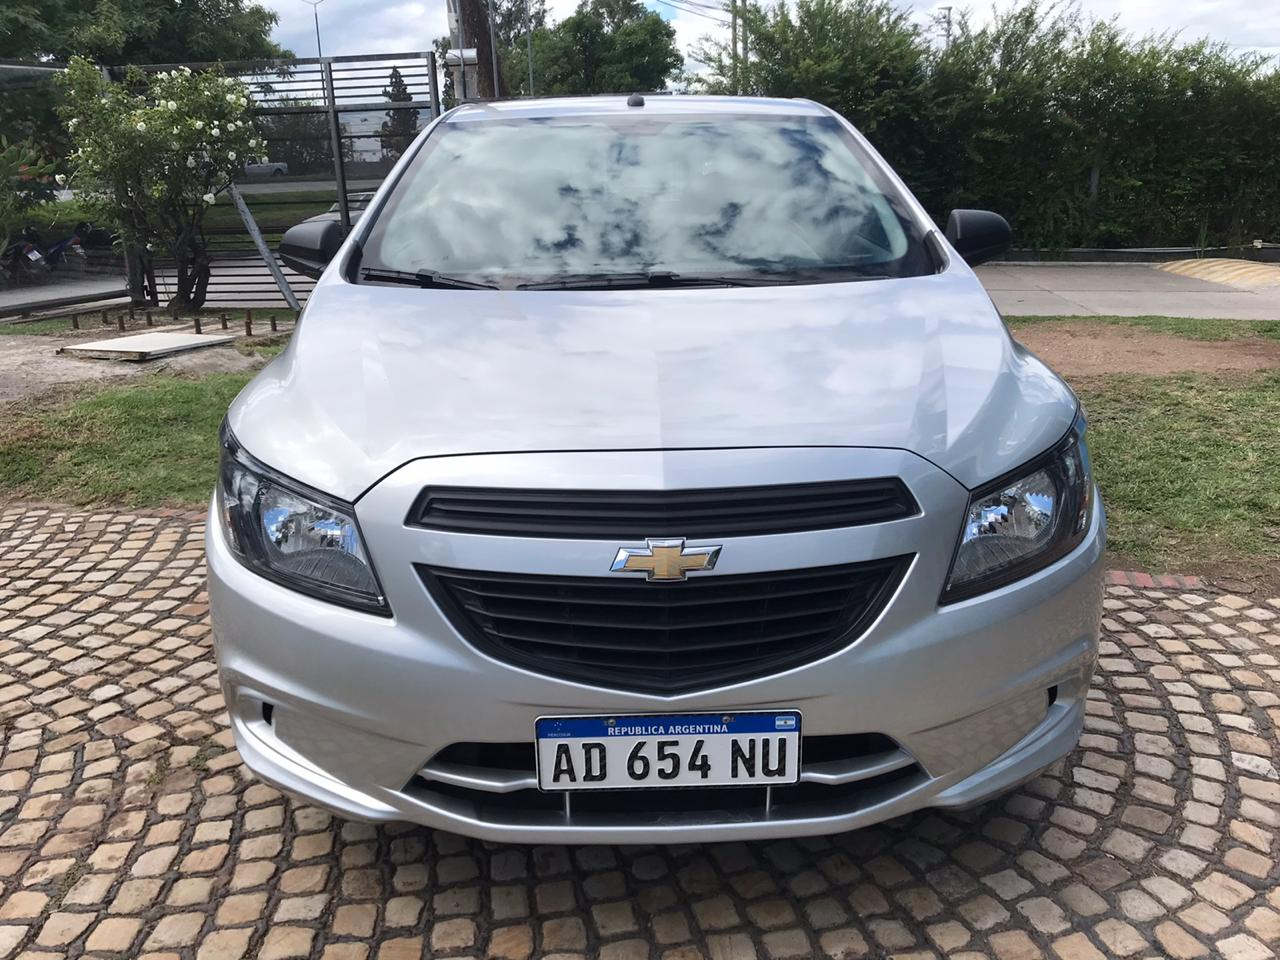 2019 CHEVROLET ONIX JOY LS + 1,4L